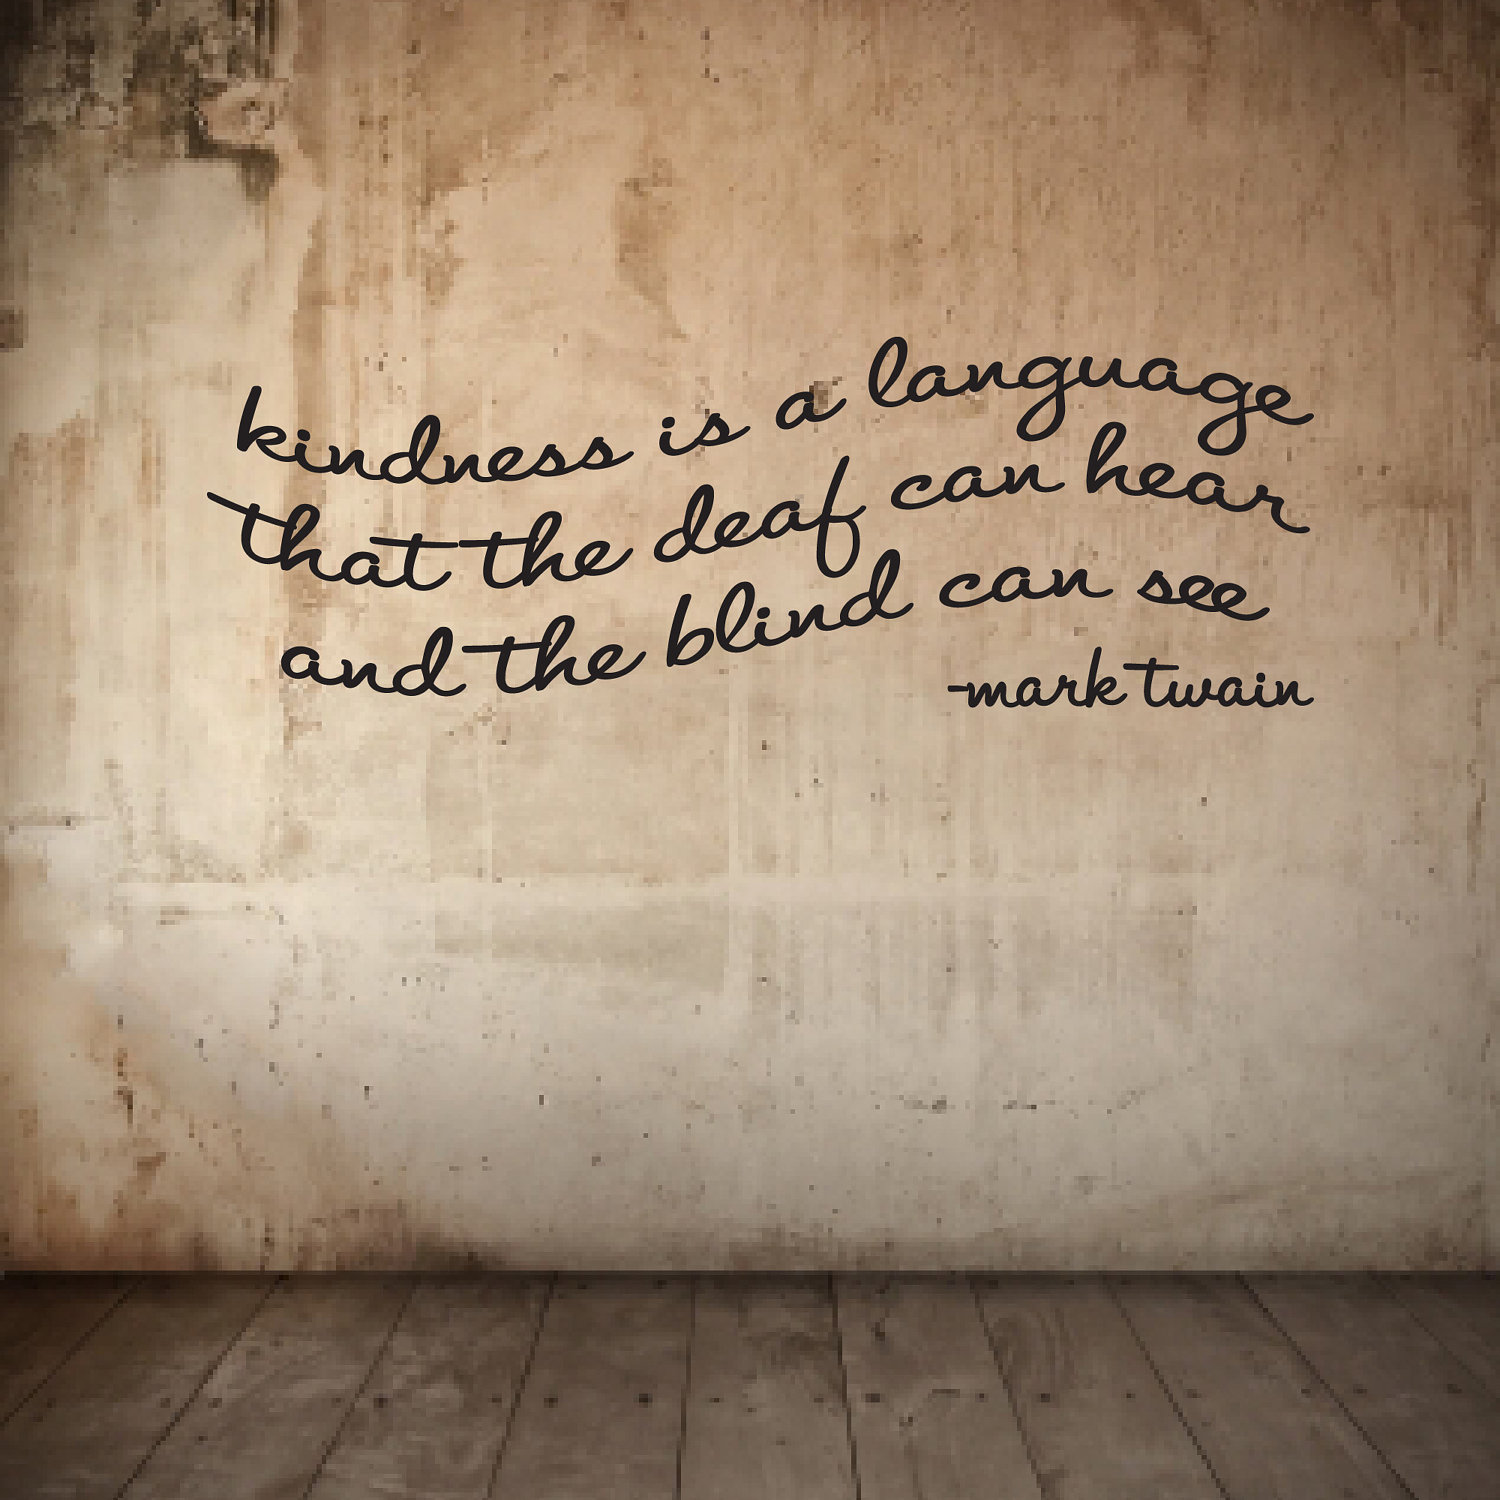 kindness-is-a-language-that-the-deaf-can-hear-and-the-blind-can-see-kindness-quote-3